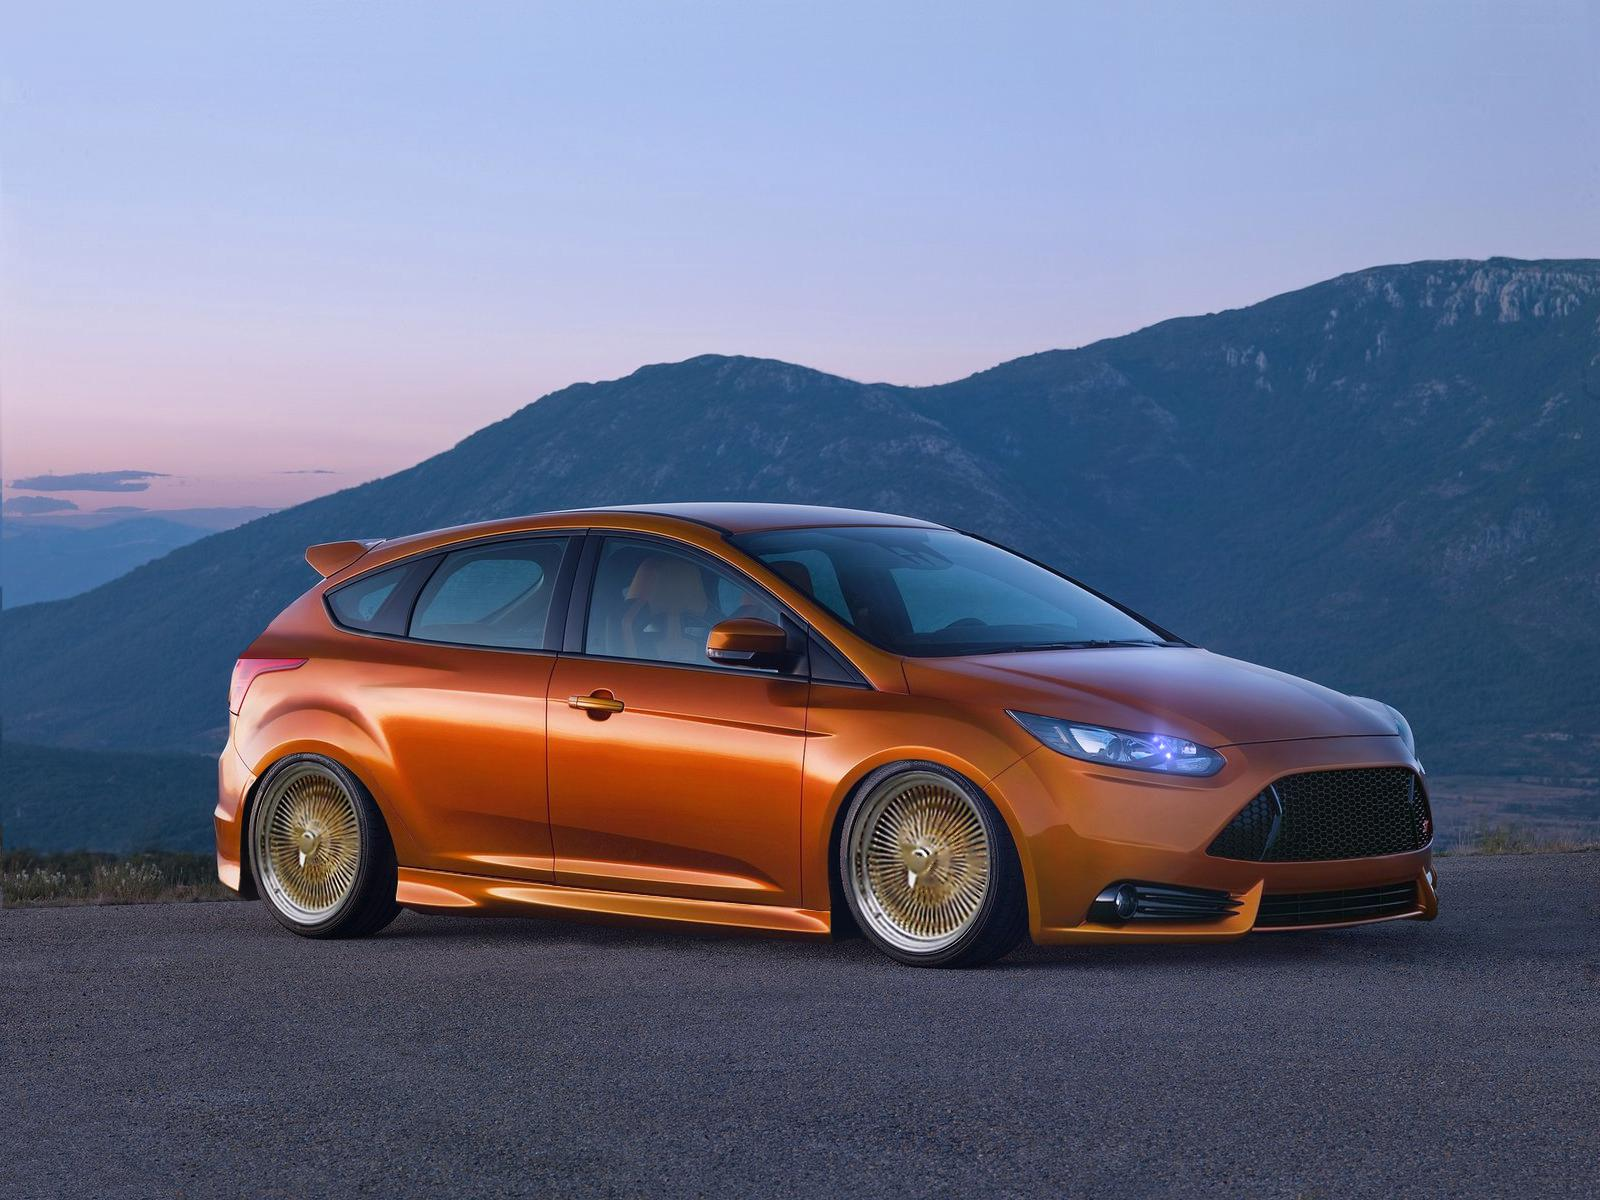 Ford Focus ST 2012 1600x1200 wallpaper 0a 1600x12001 1600x1200